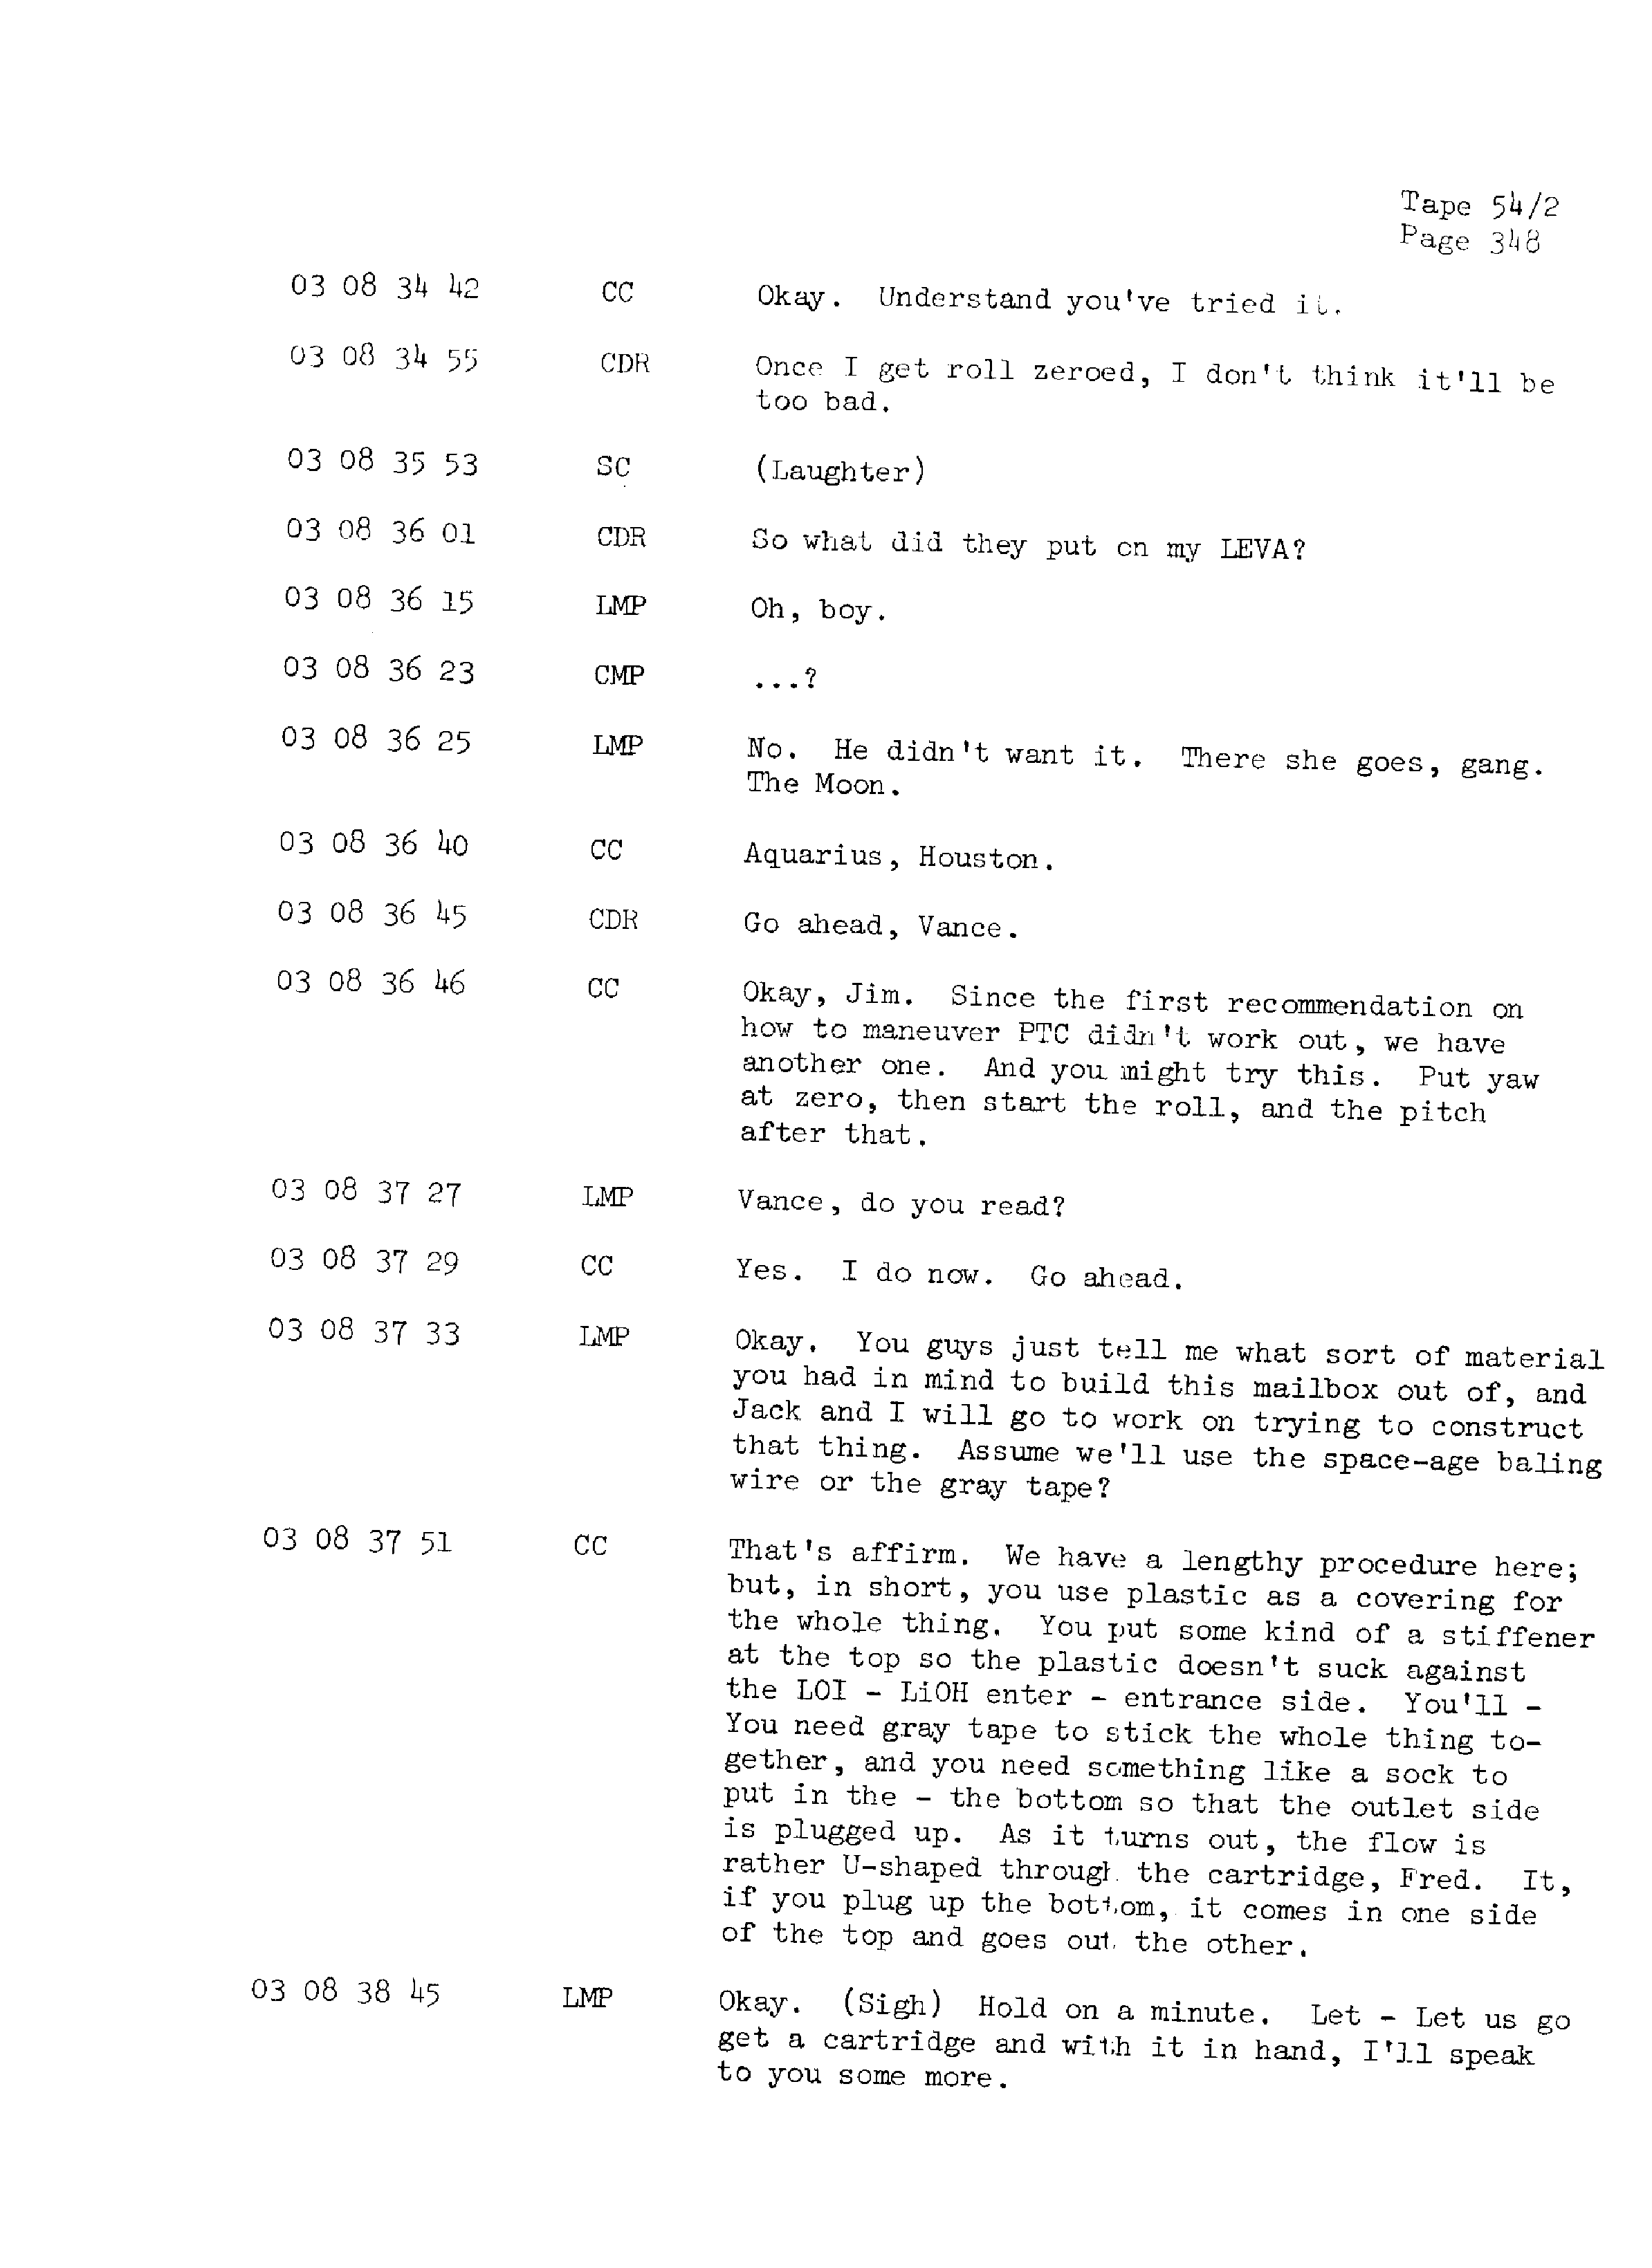 Page 355 of Apollo 13's original transcript